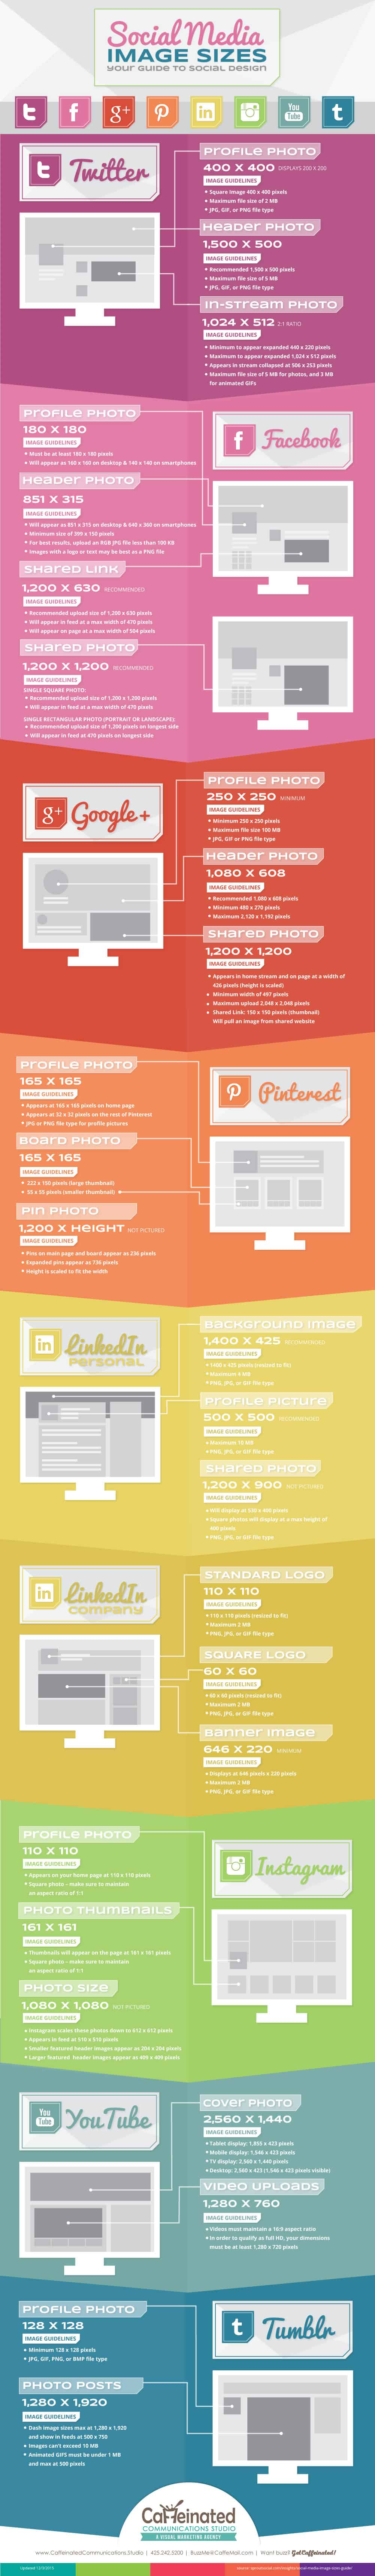 Social media graphics sizes infographic